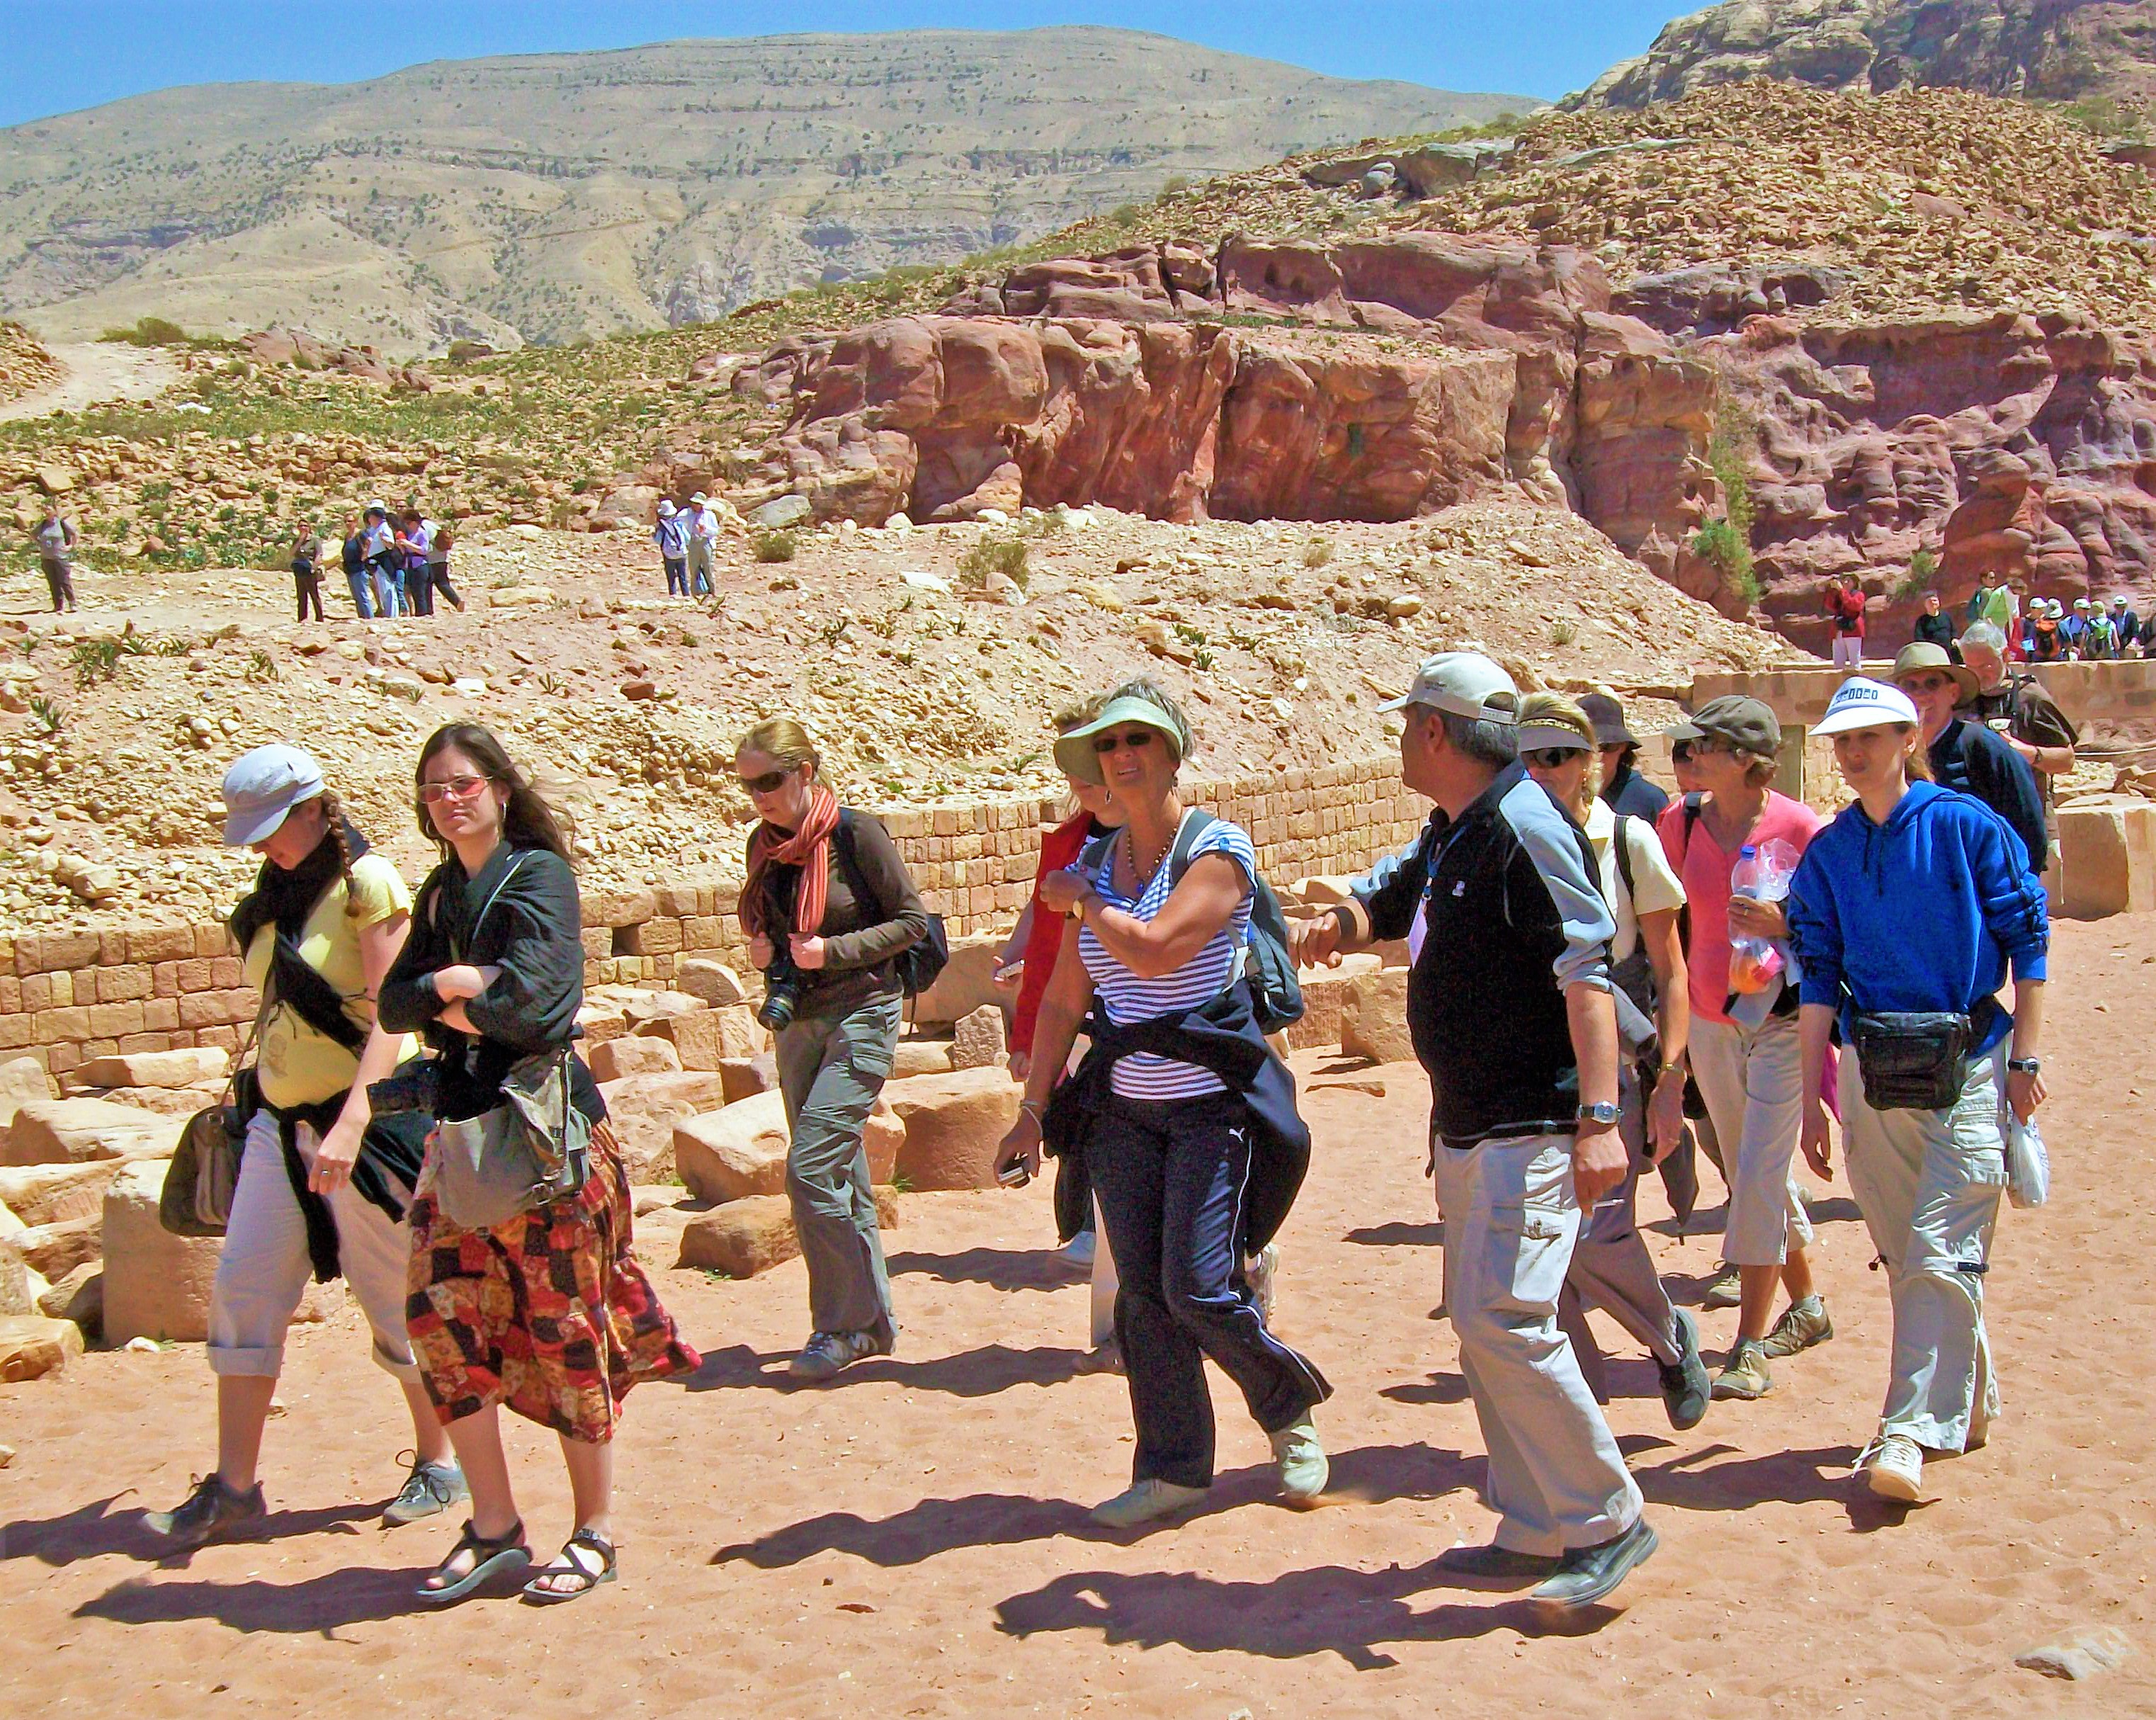 Tourists_with_guide_in_lower_canyon%2C_Petra.jpg?profile=RESIZE_710x